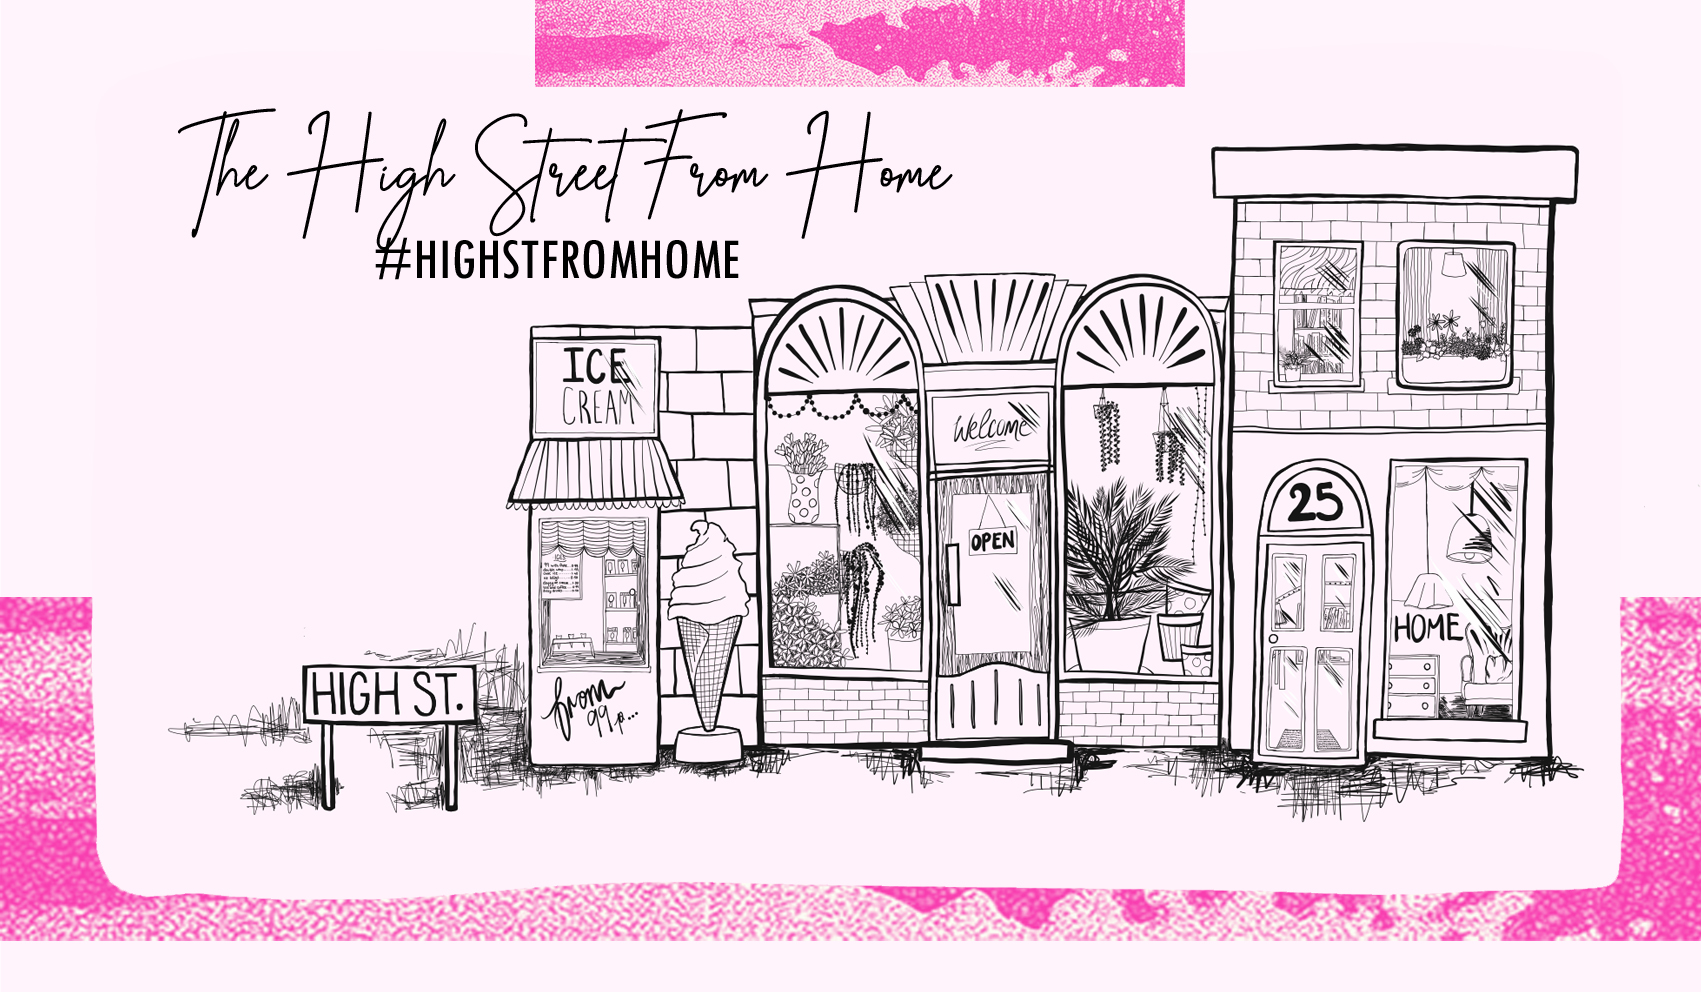 Button: The High Street From Home with a digital illustration of a high street featuring an icecream shop, flower shop and home shop